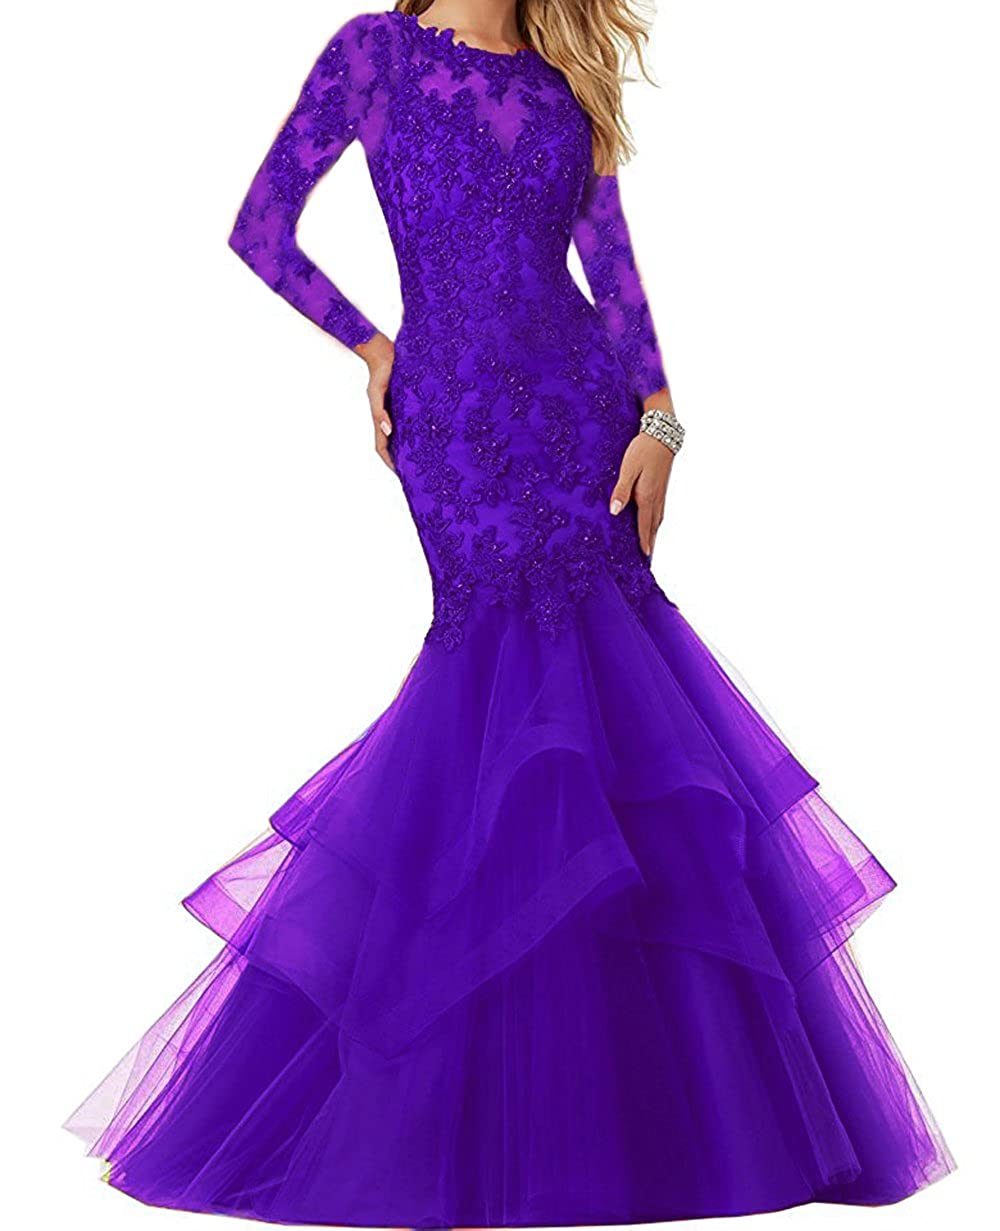 Dark Purple Ellenhouse Women's Long Sleeve Mermaid Applique Prom Party Evening Dresses EL339